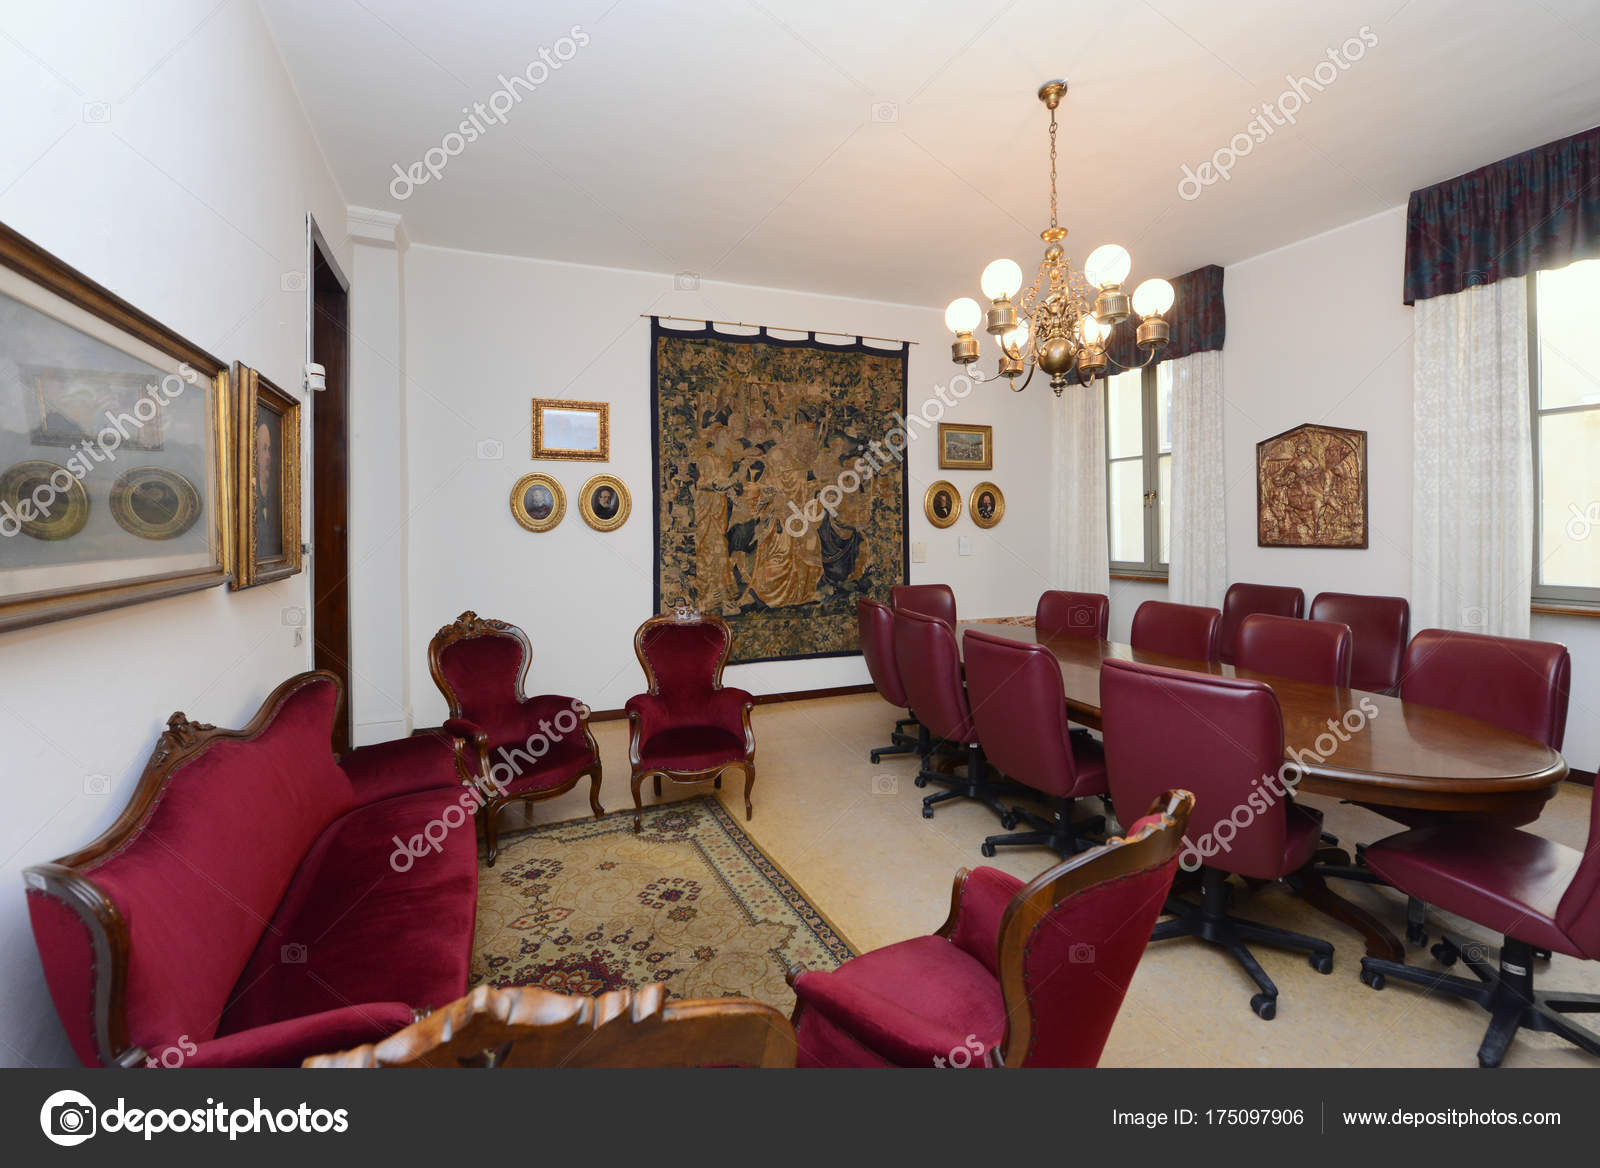 Room joint city varese lombardy italy stock photo